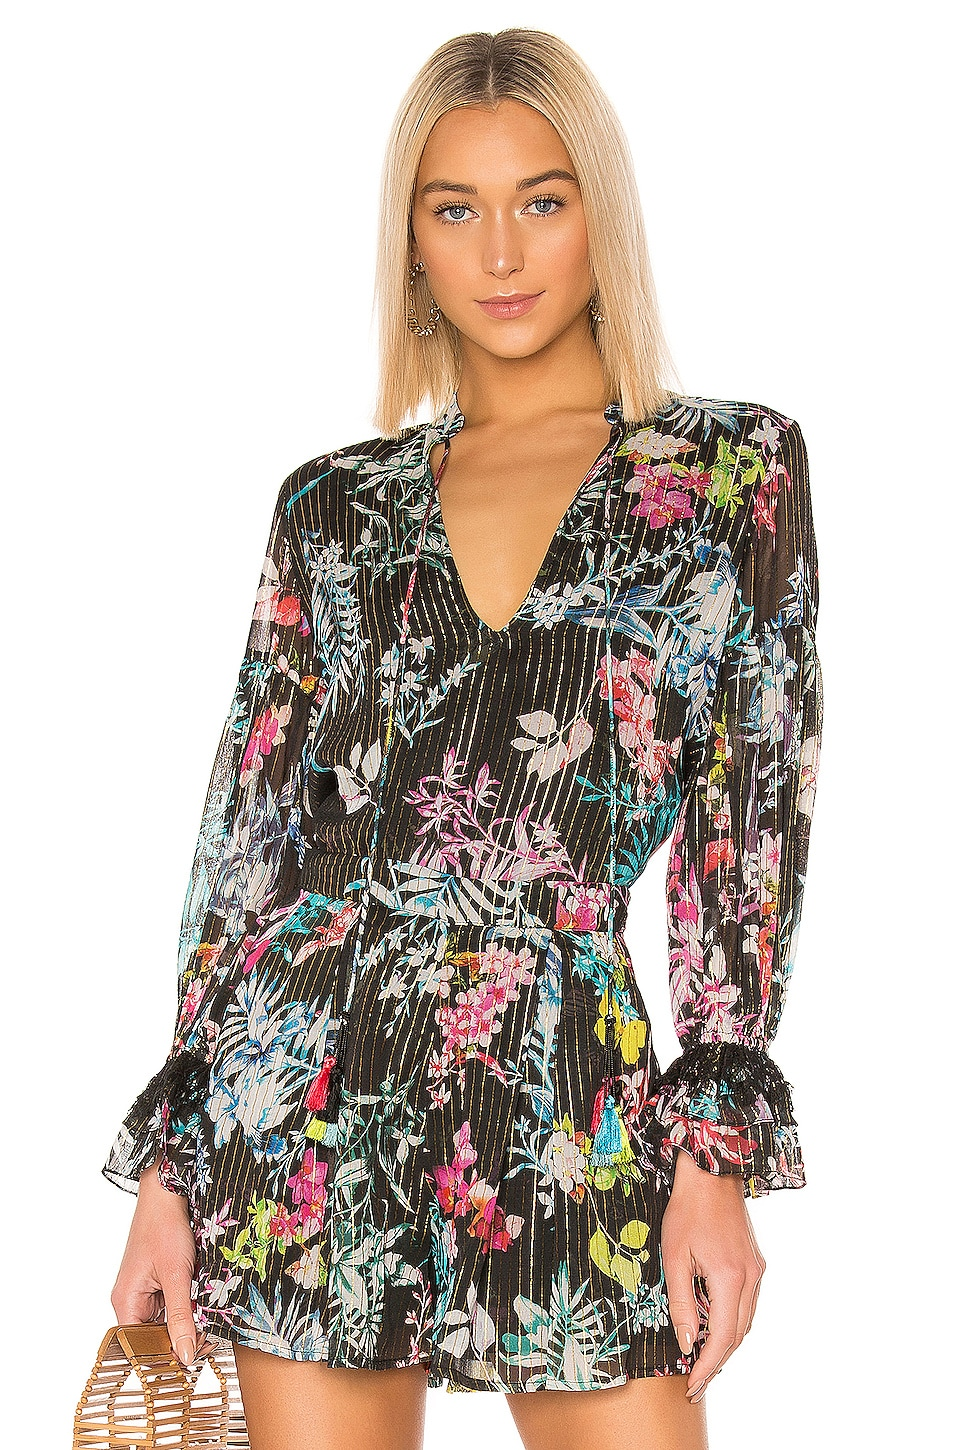 ROCOCO SAND Moonlight Printed Blouse in Black